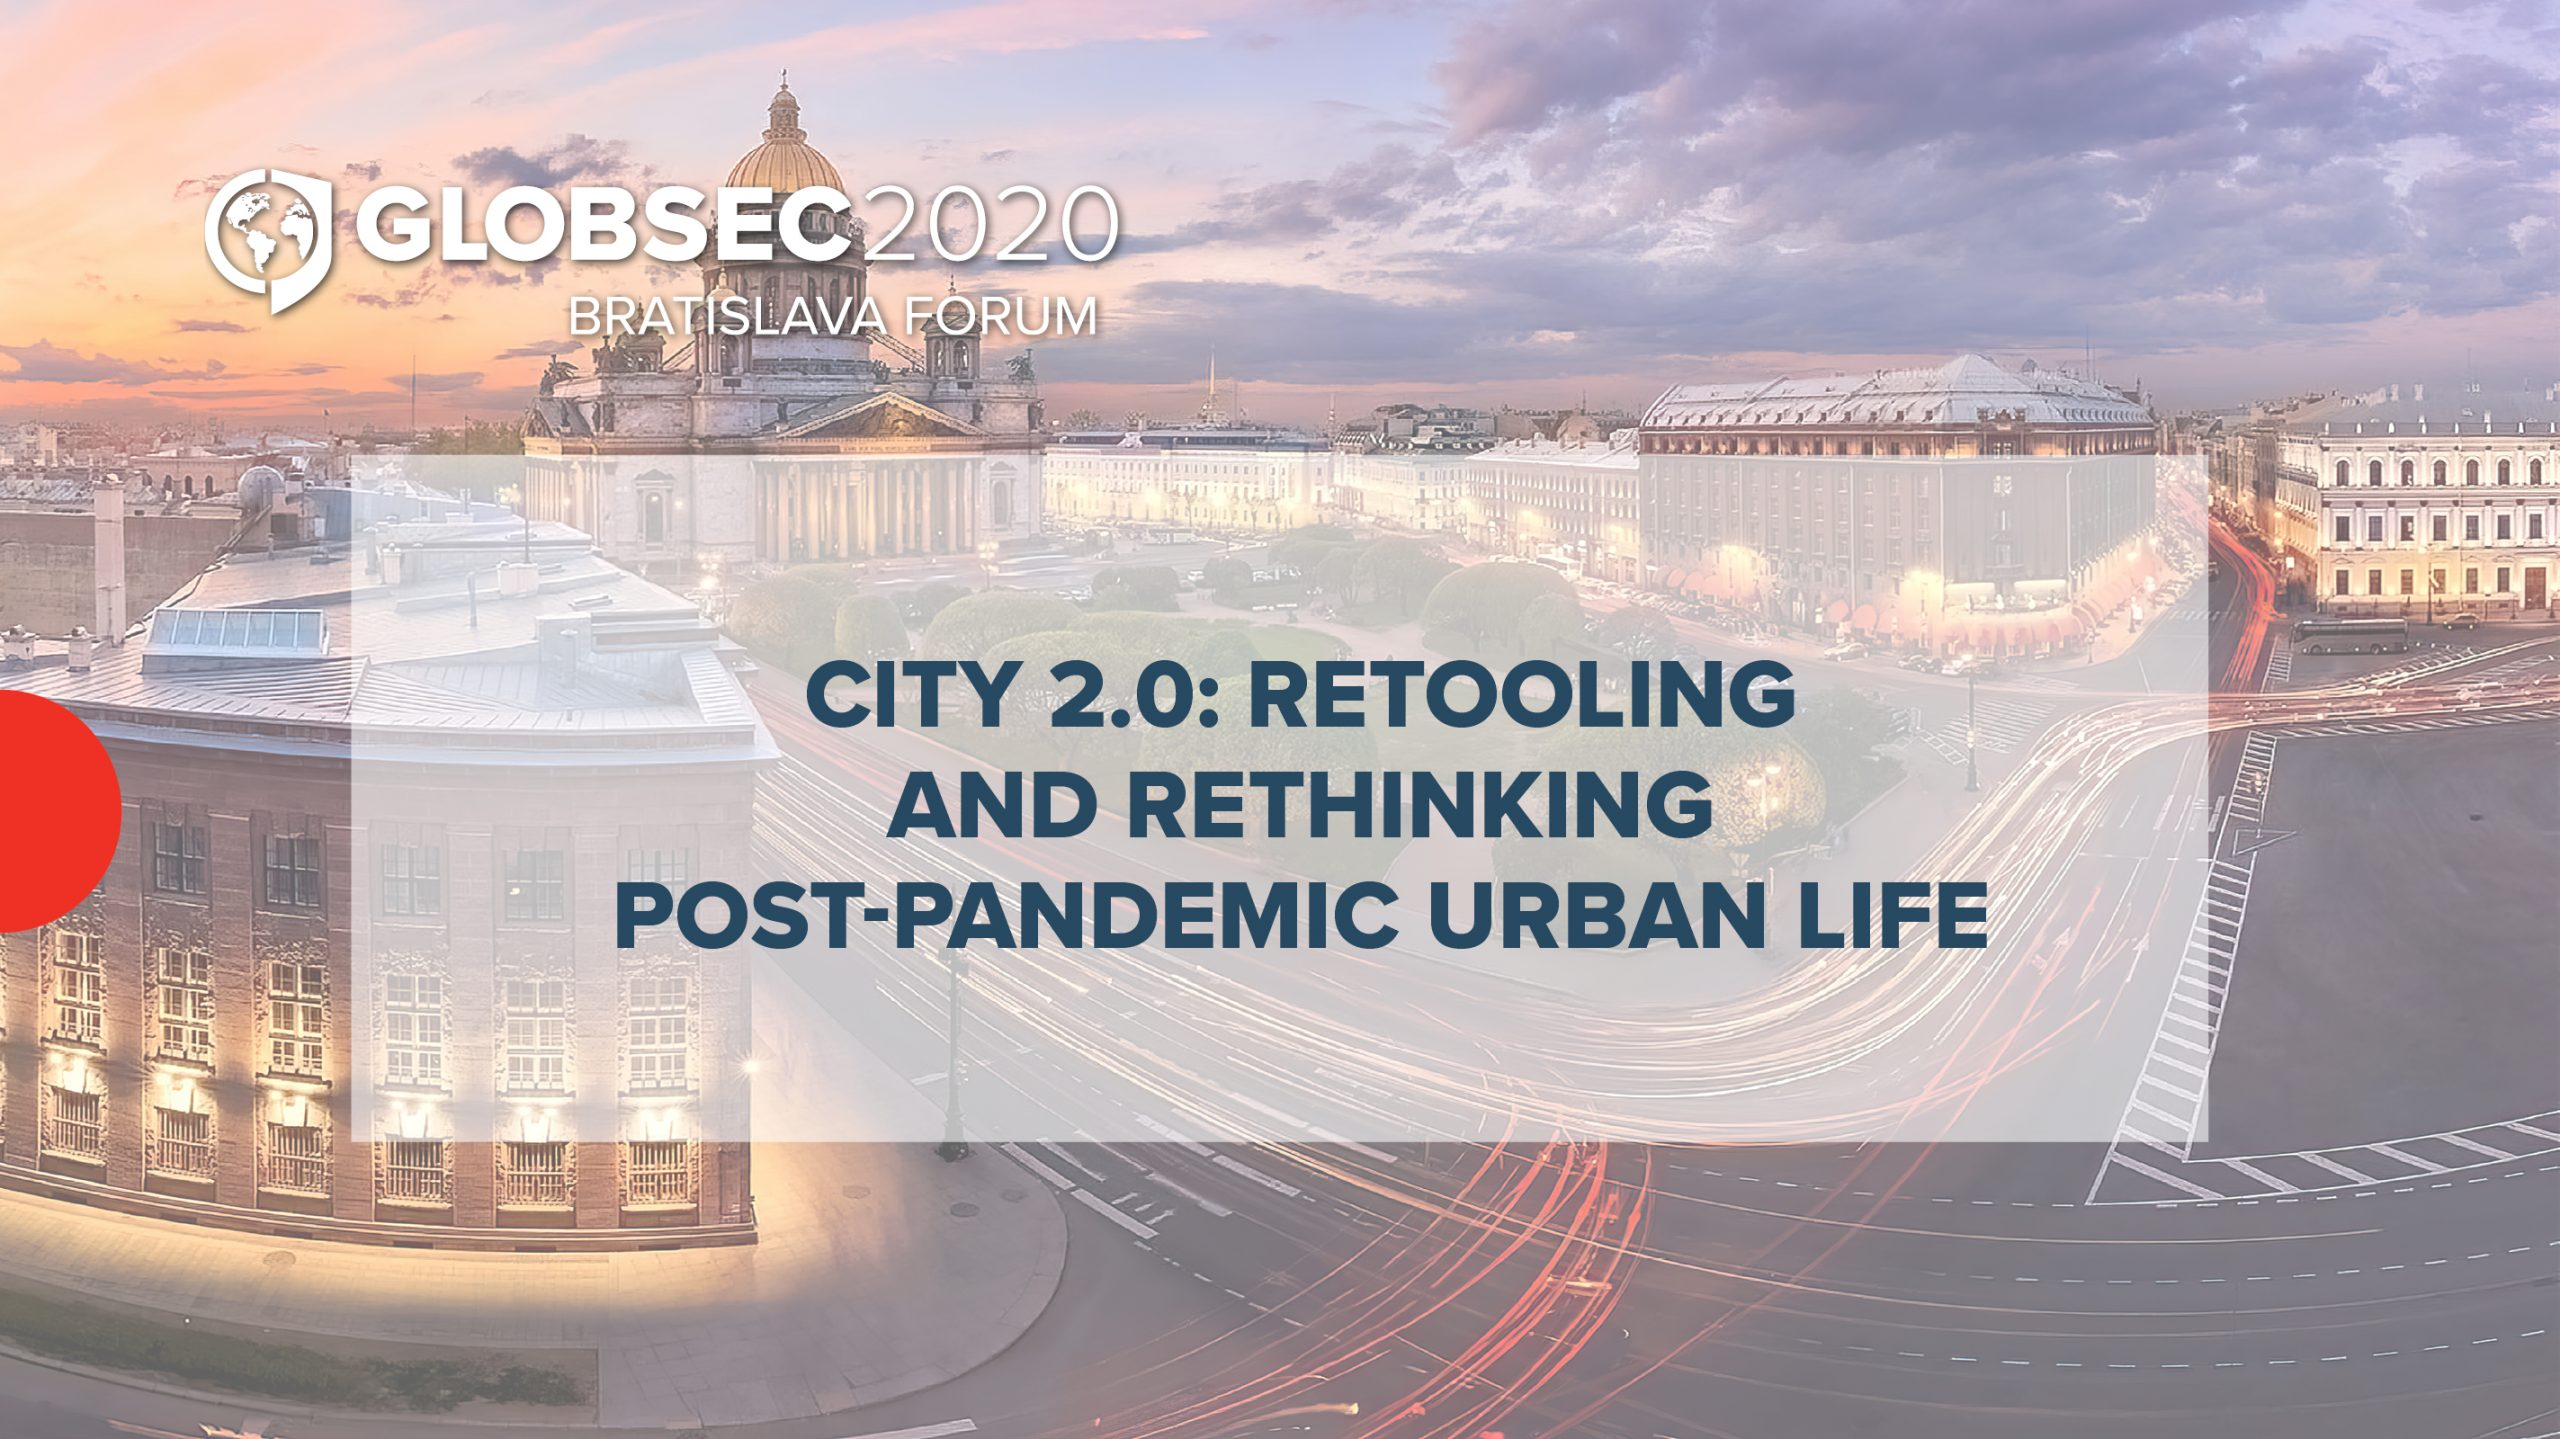 City 2.0: Retooling and Rethinking Post-Pandemic Urban Life